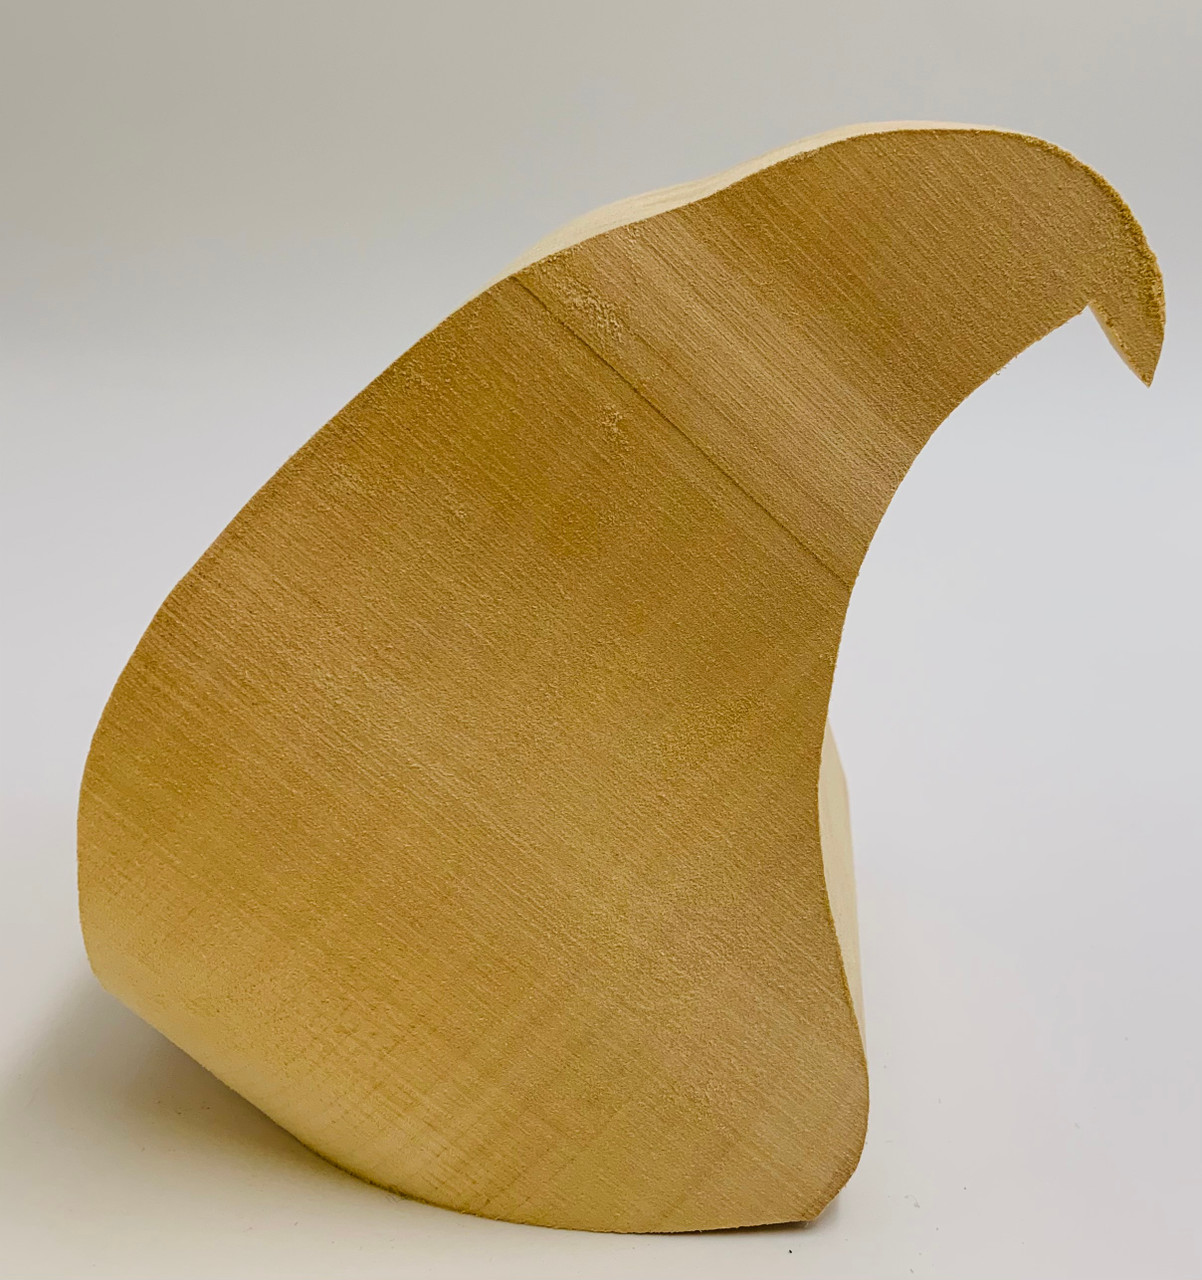 Eagle Head Basswood Cutout showing an image of the side profile.